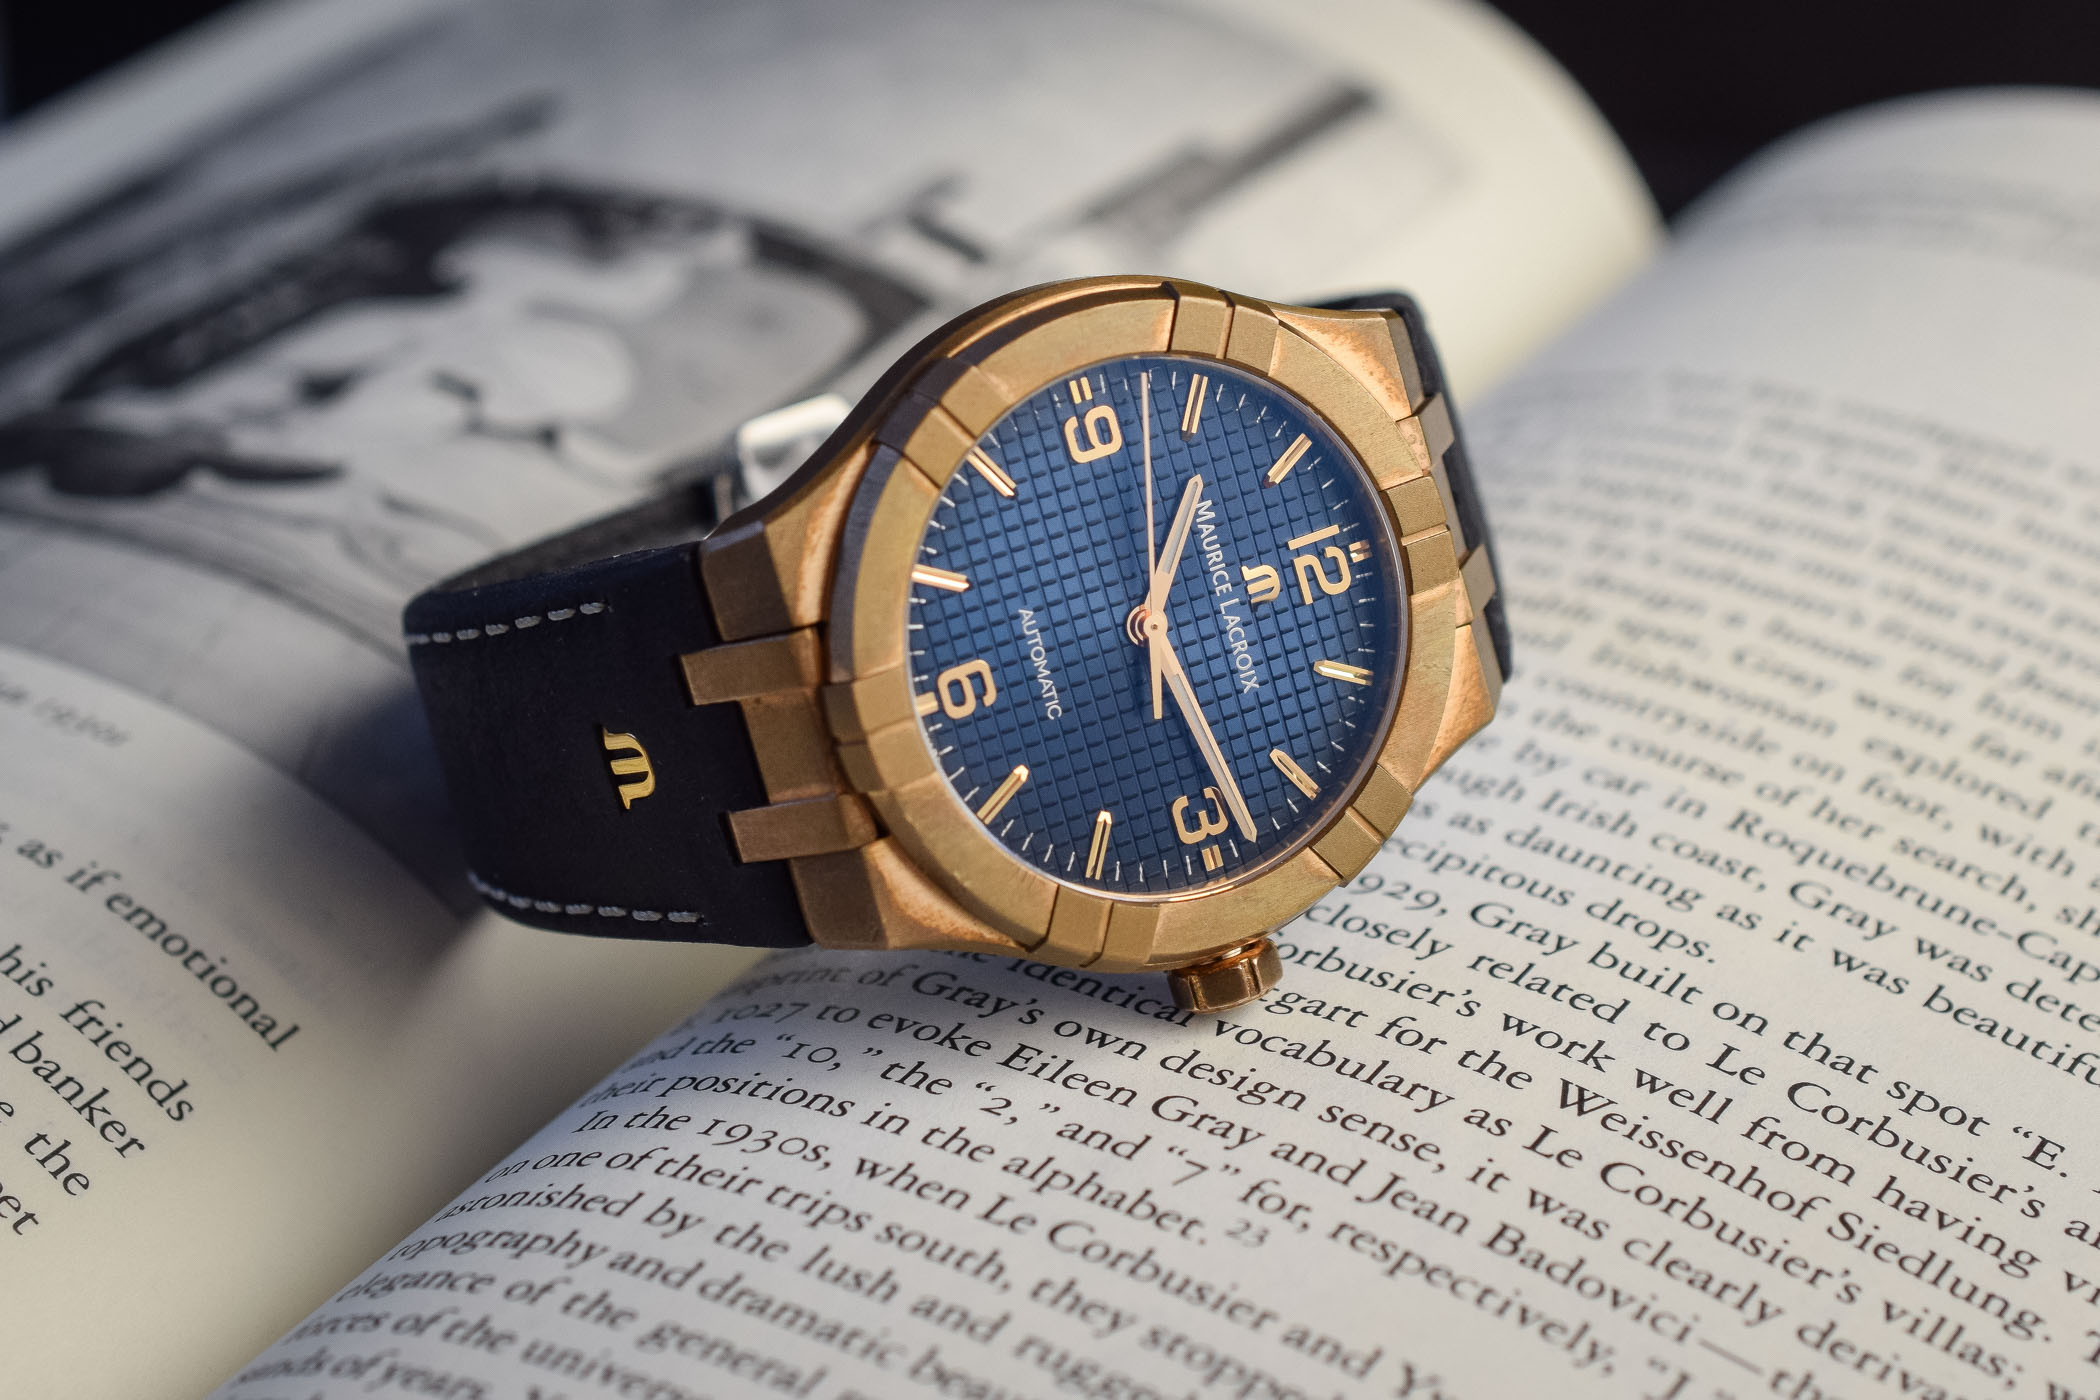 Maurice Lacroix Aikon Automatic Bronze Limited Edition - 2